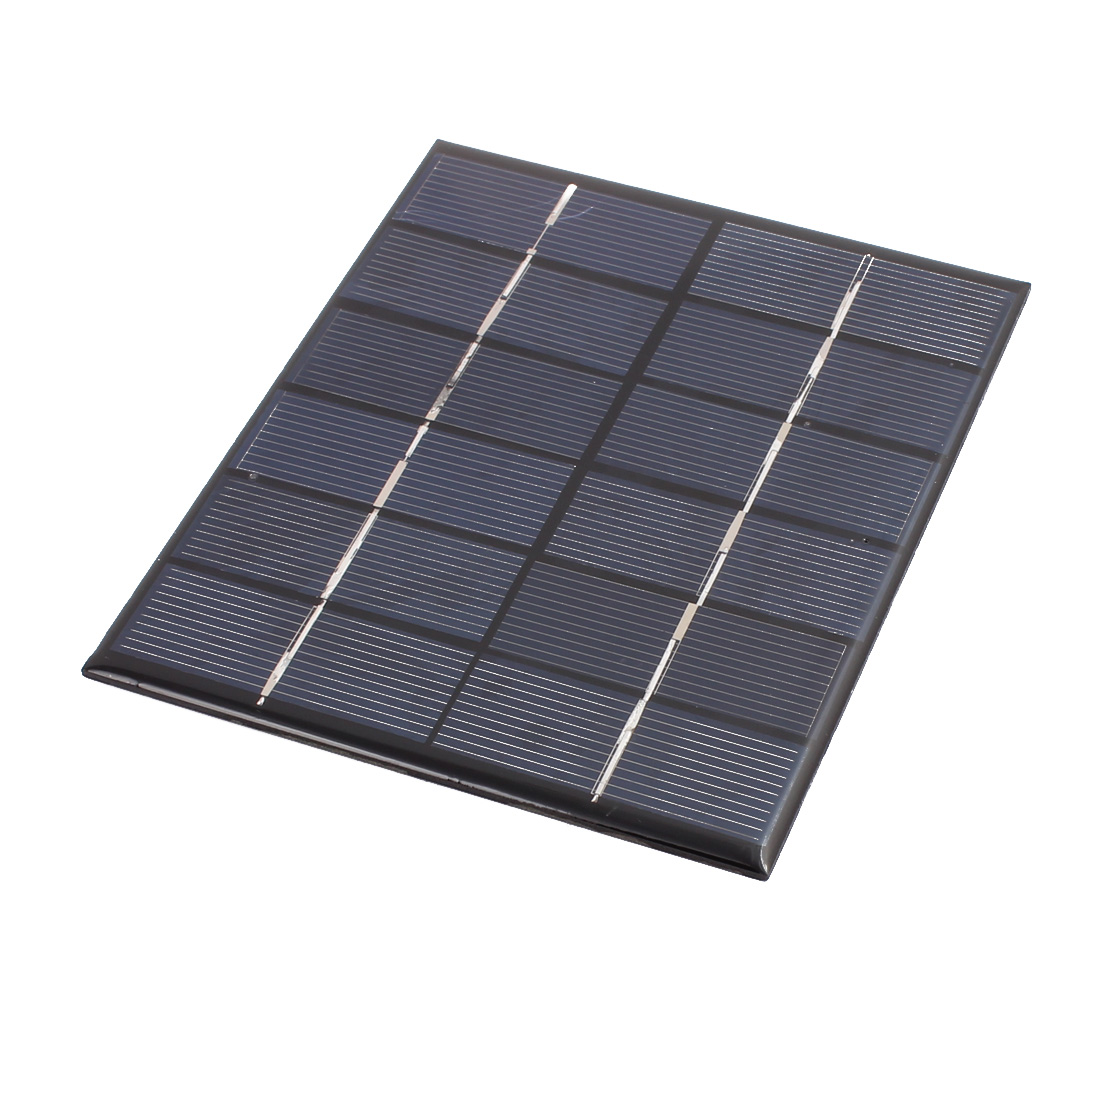 136mm x 110mm 2 Watts 6 Volts Polycrystalline Solar Cell Panel Module